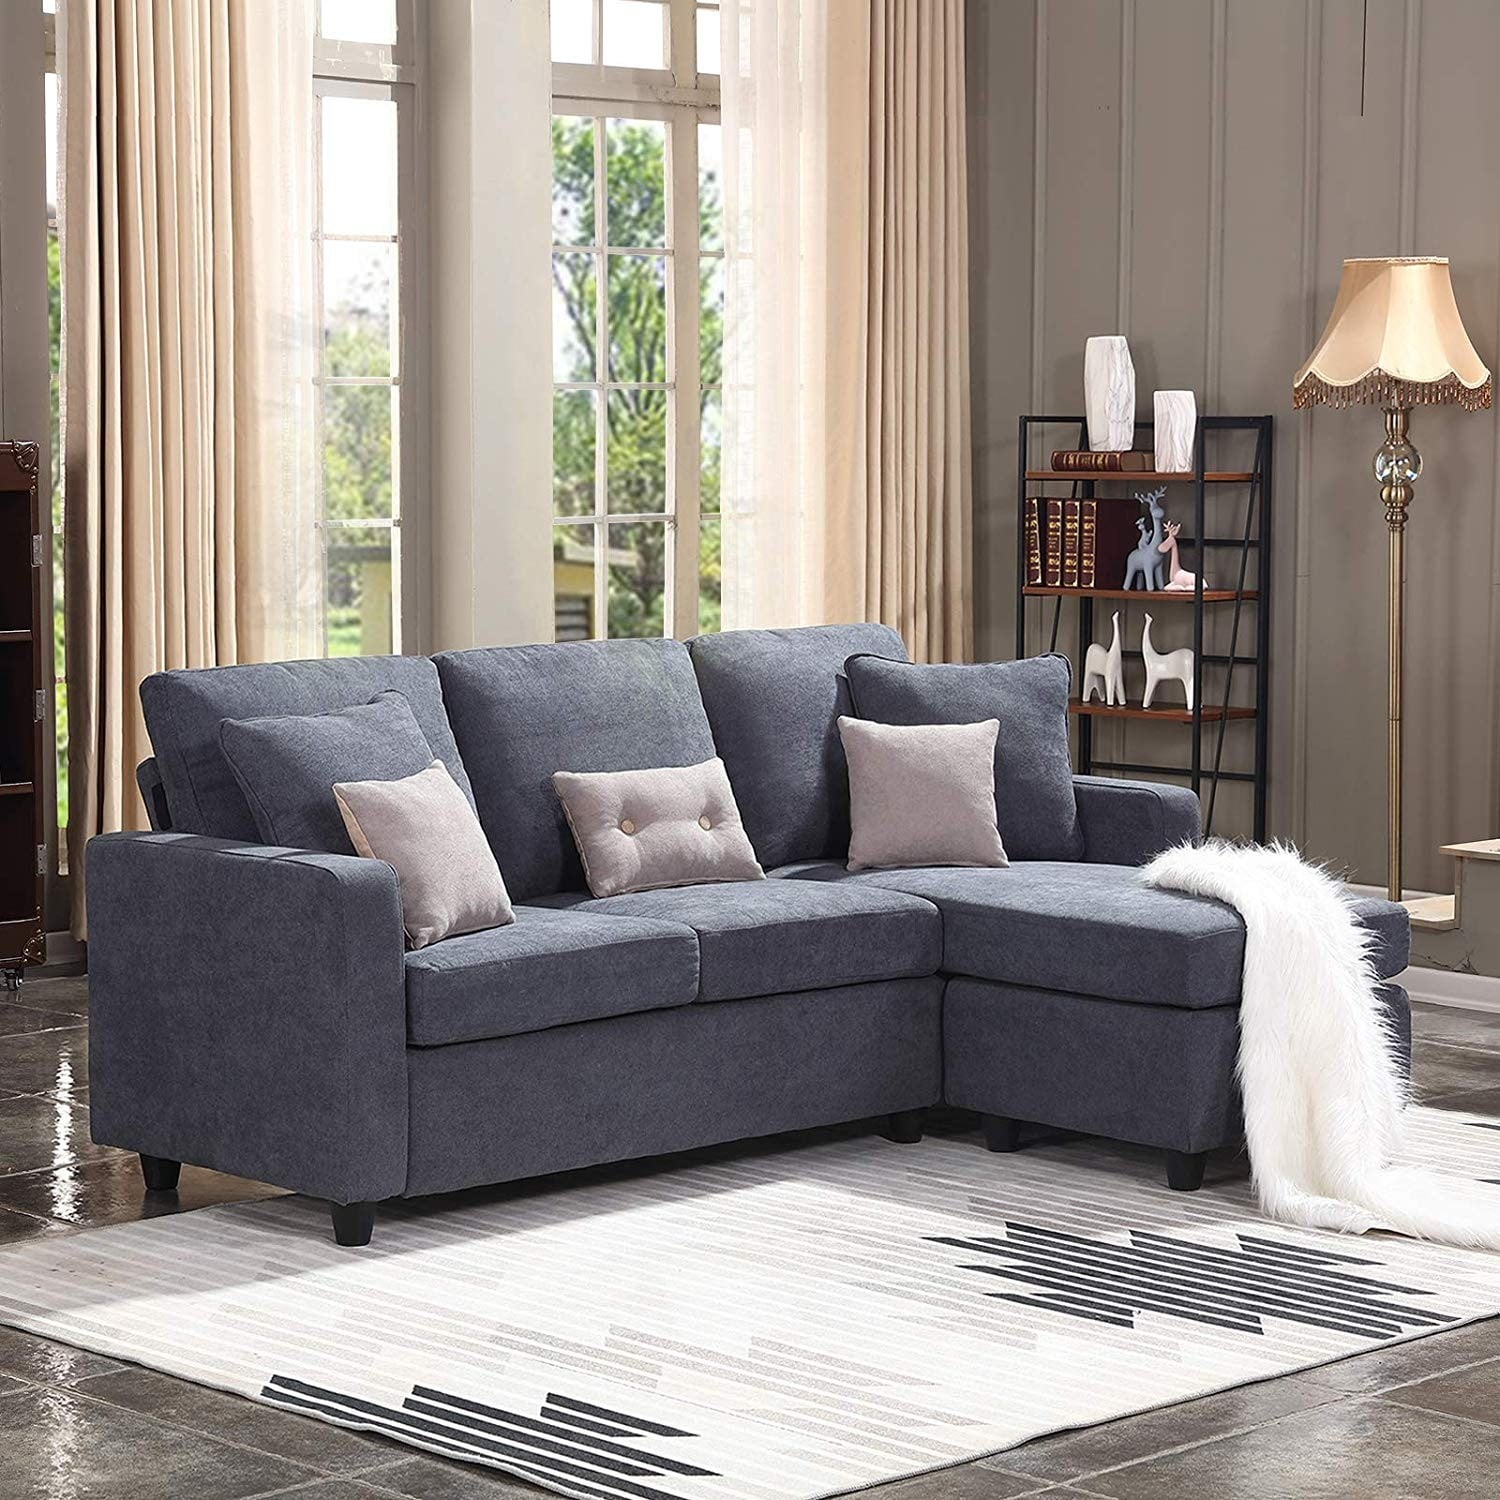 Best Cheap Couches Popsugar Home